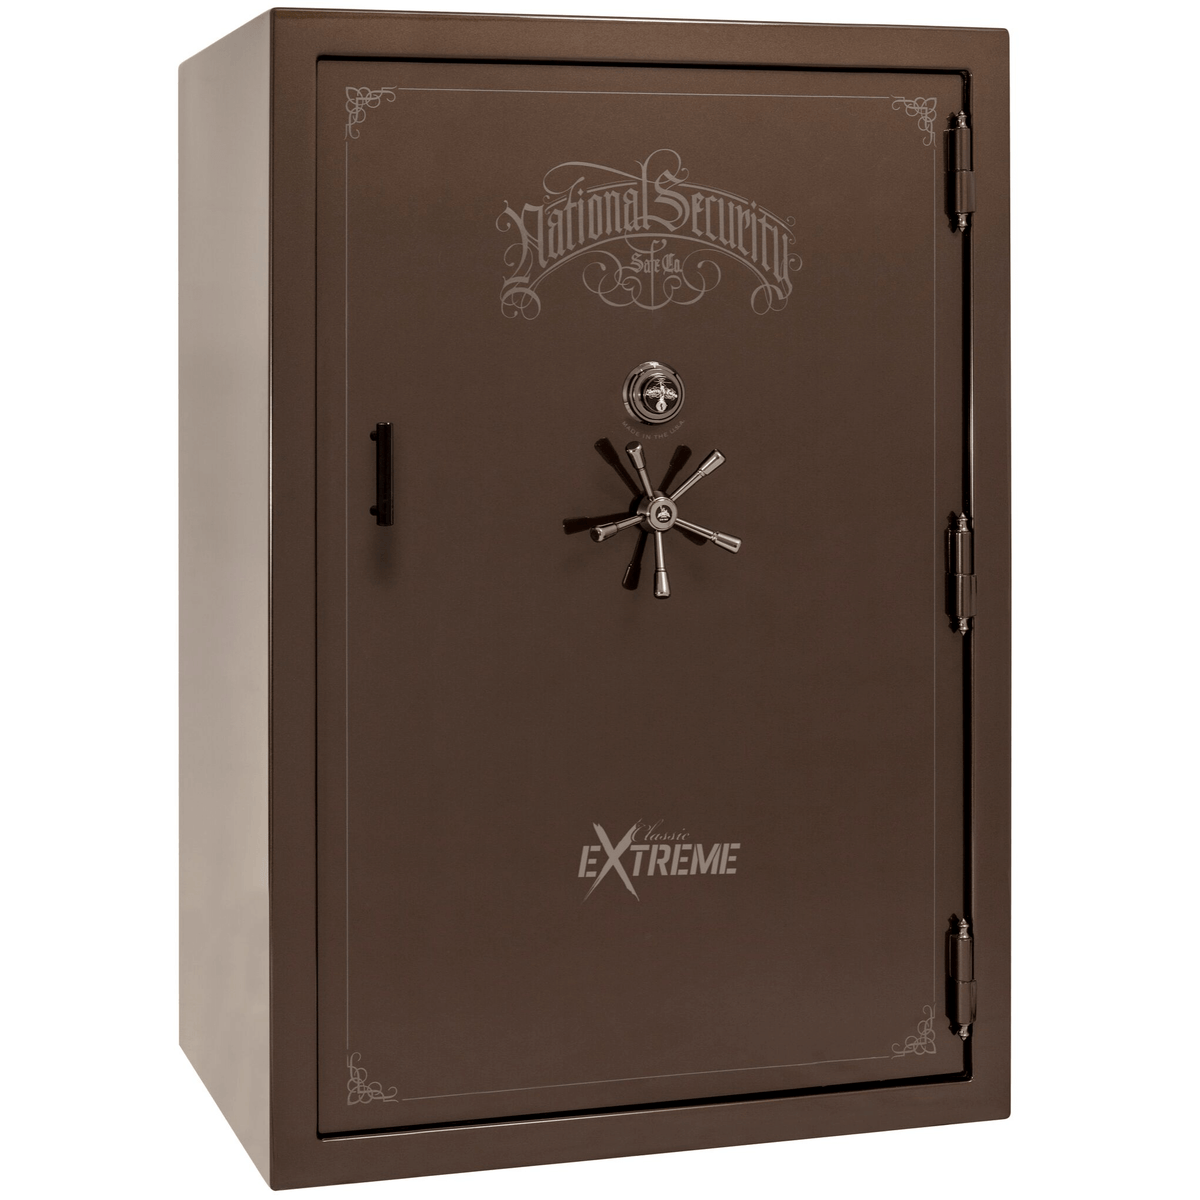 "Classic Select Extreme | 60 | Level 6 Security | 90 Minute Fire Protection | Bronze Gloss | Black Mechanical Lock | 72.5""(H) x 50""(W) x 32""(D)"